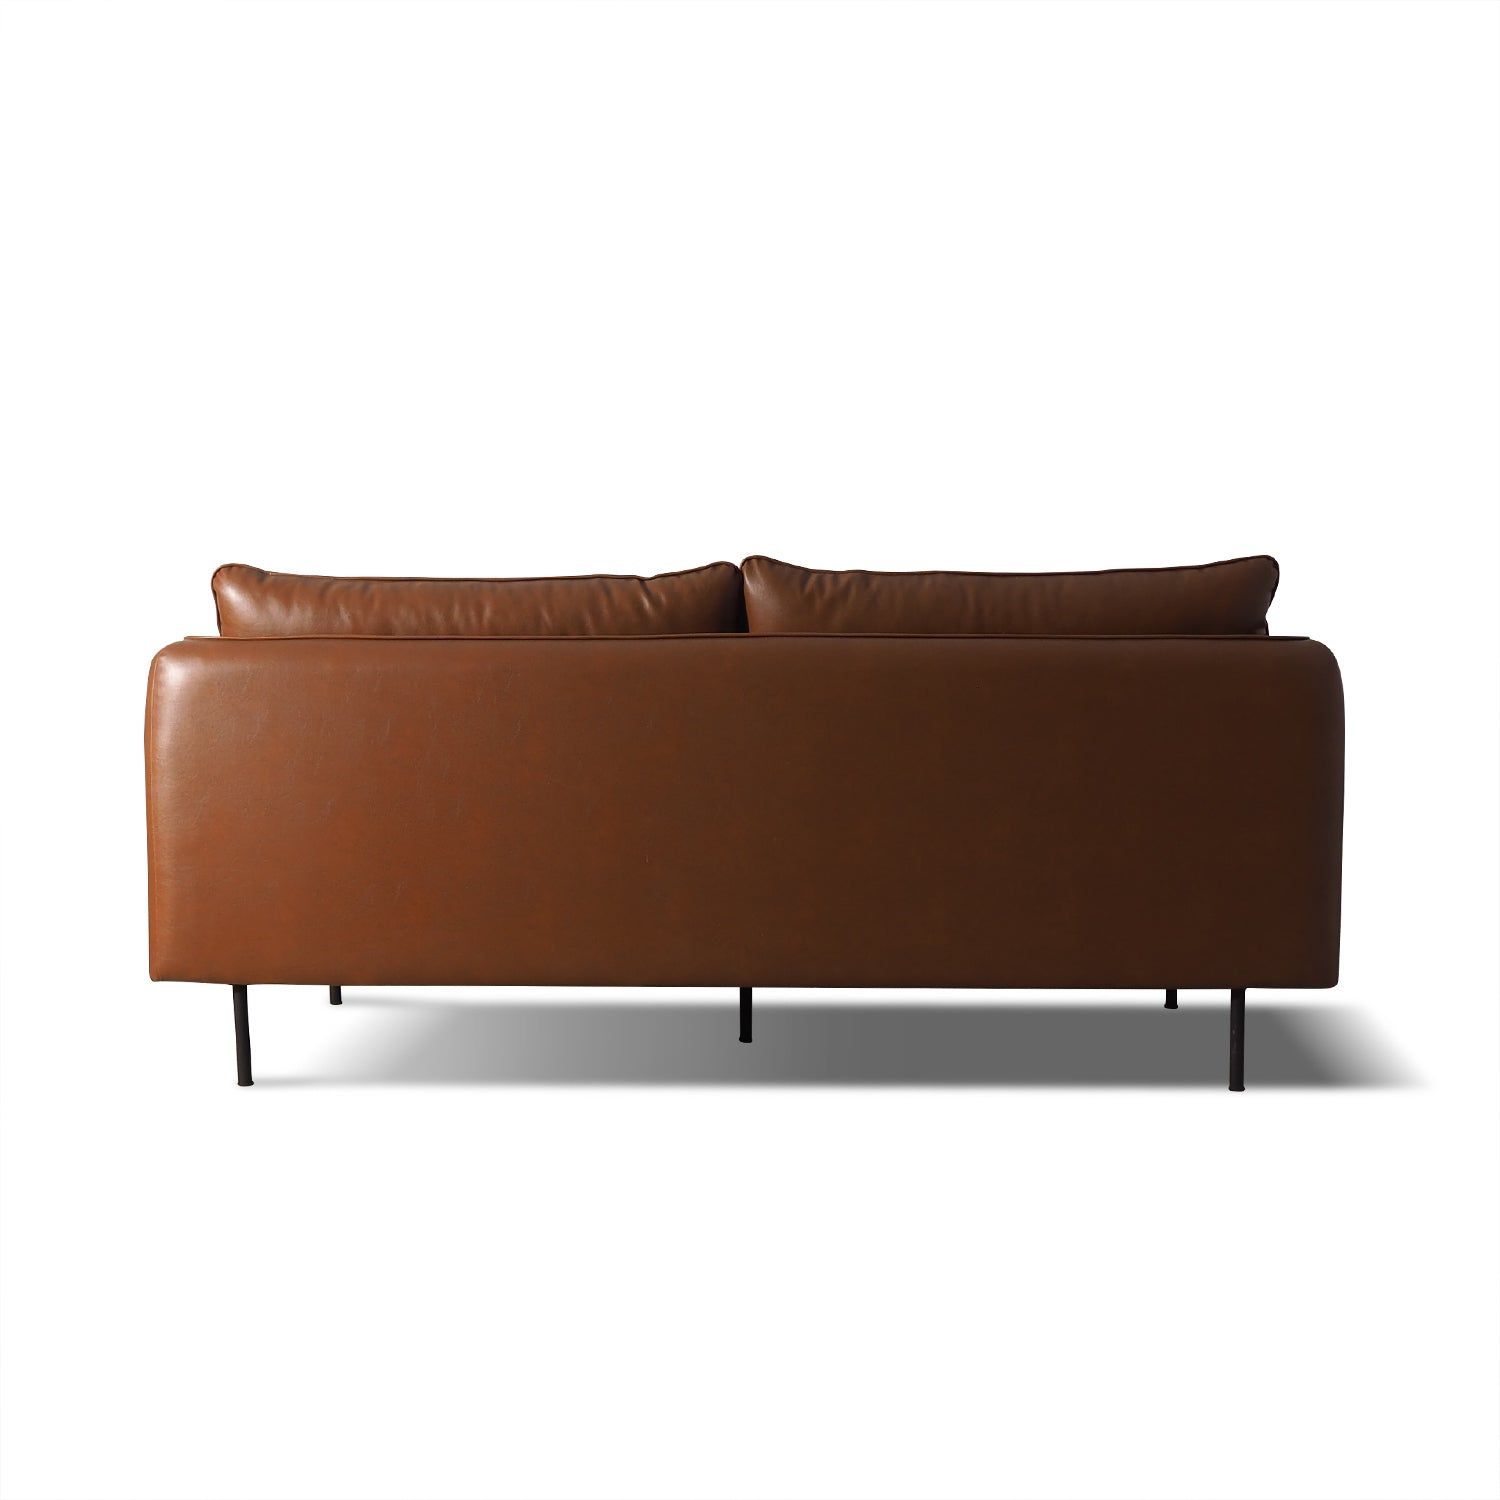 Brownilow 2 seater sofa